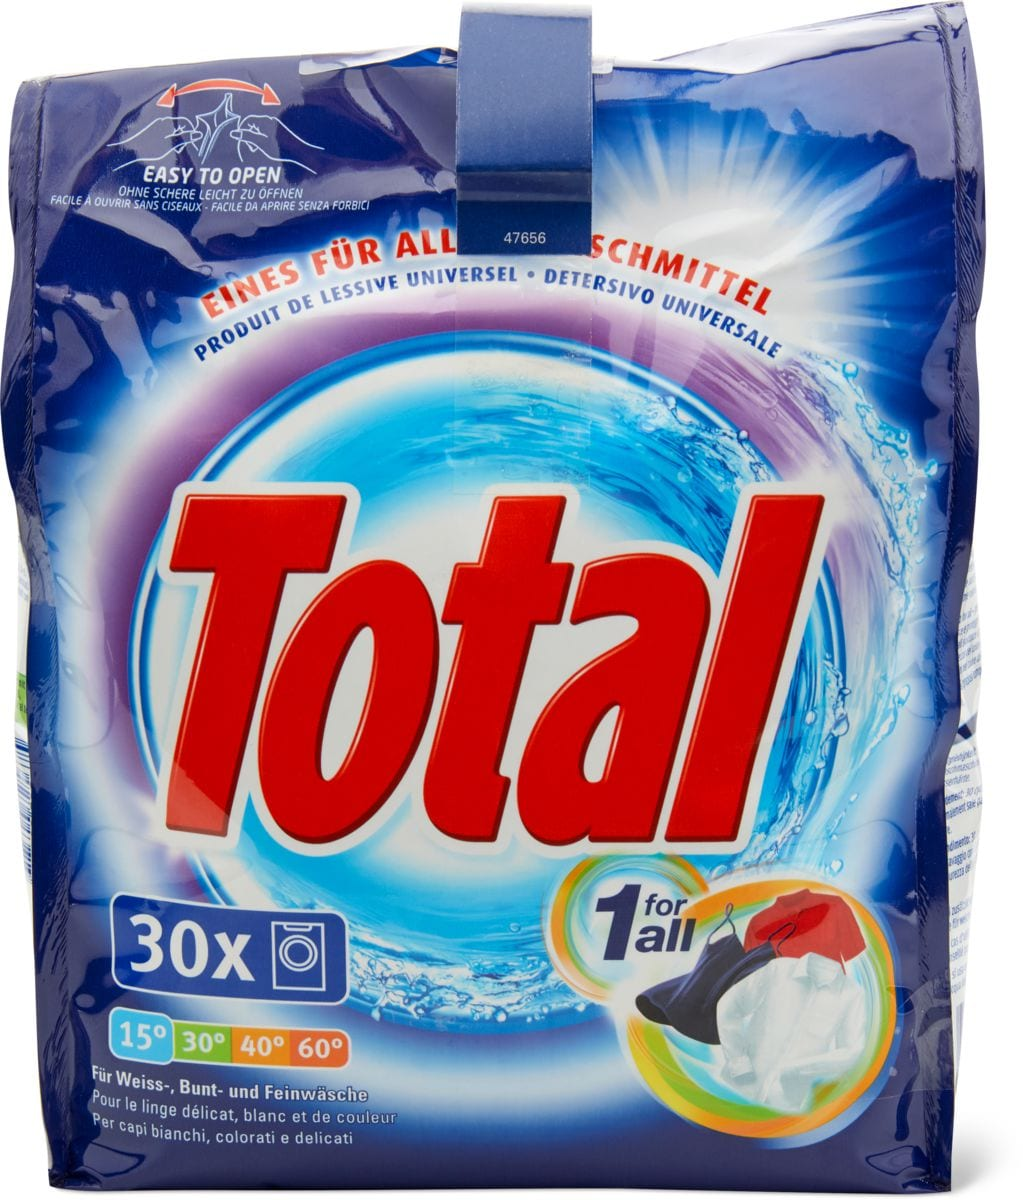 Total Waschmittel 1 for all